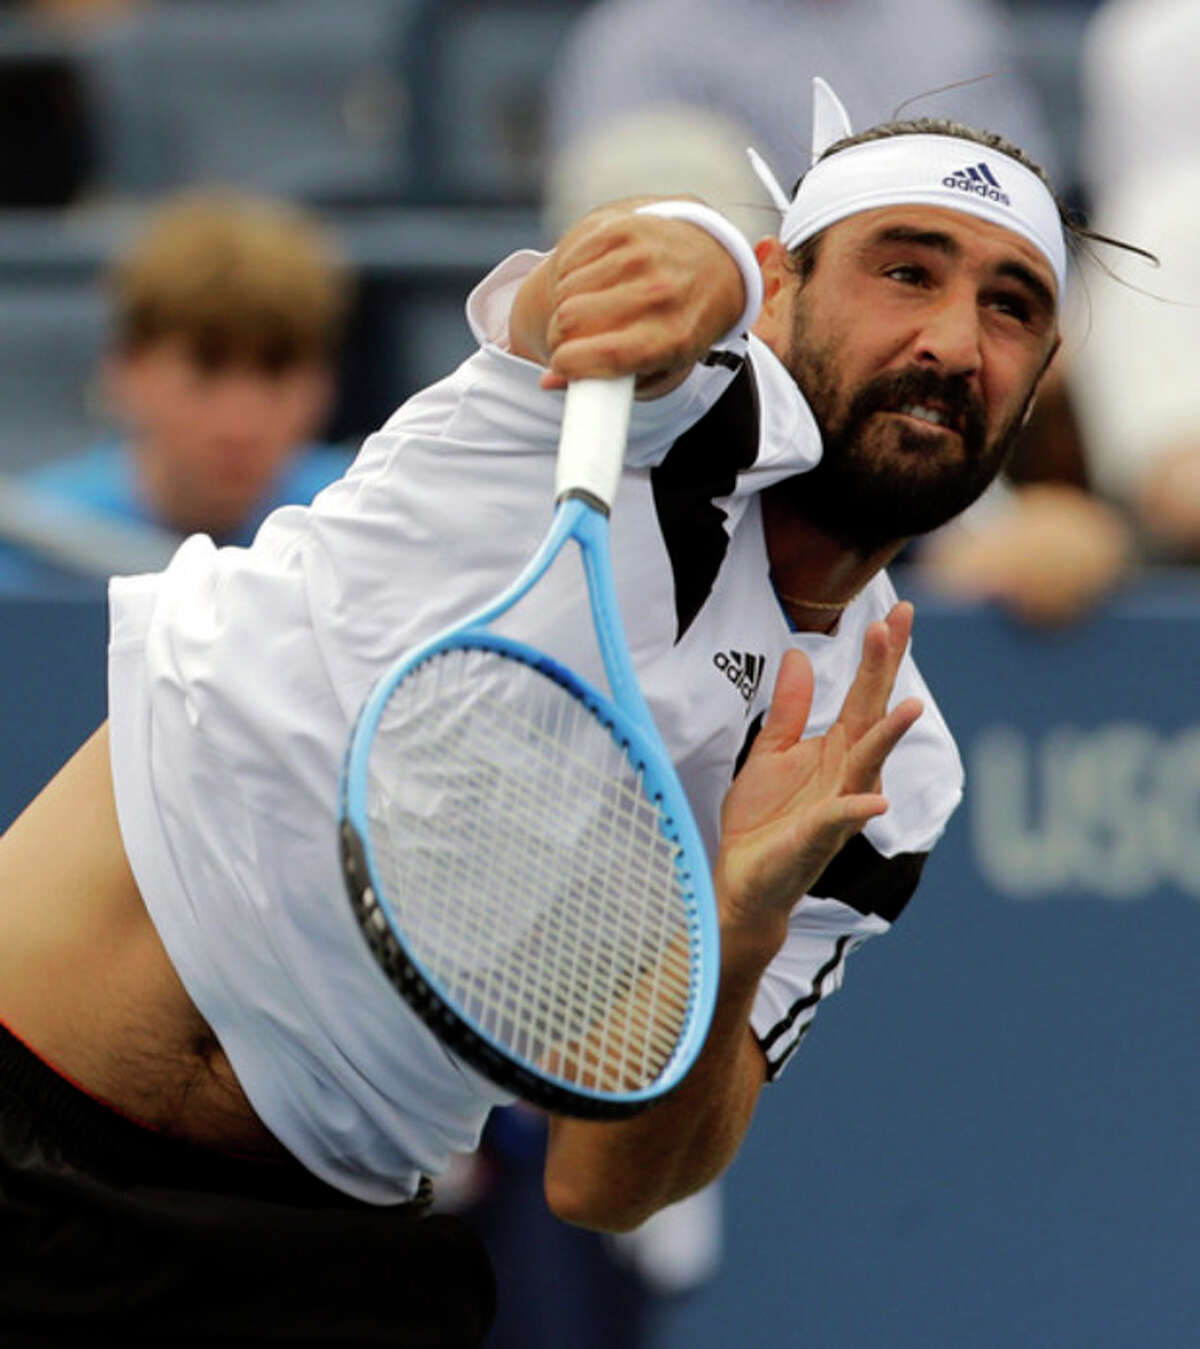 Marcos Baghdatis, of Cyprus, serves to Stanislas Wawrinka, of Switzerland, during the third round of the 2013 U.S. Open tennis tournament, Sunday, Sept. 1, 2013, in New York. (AP Photo/Mike Groll)